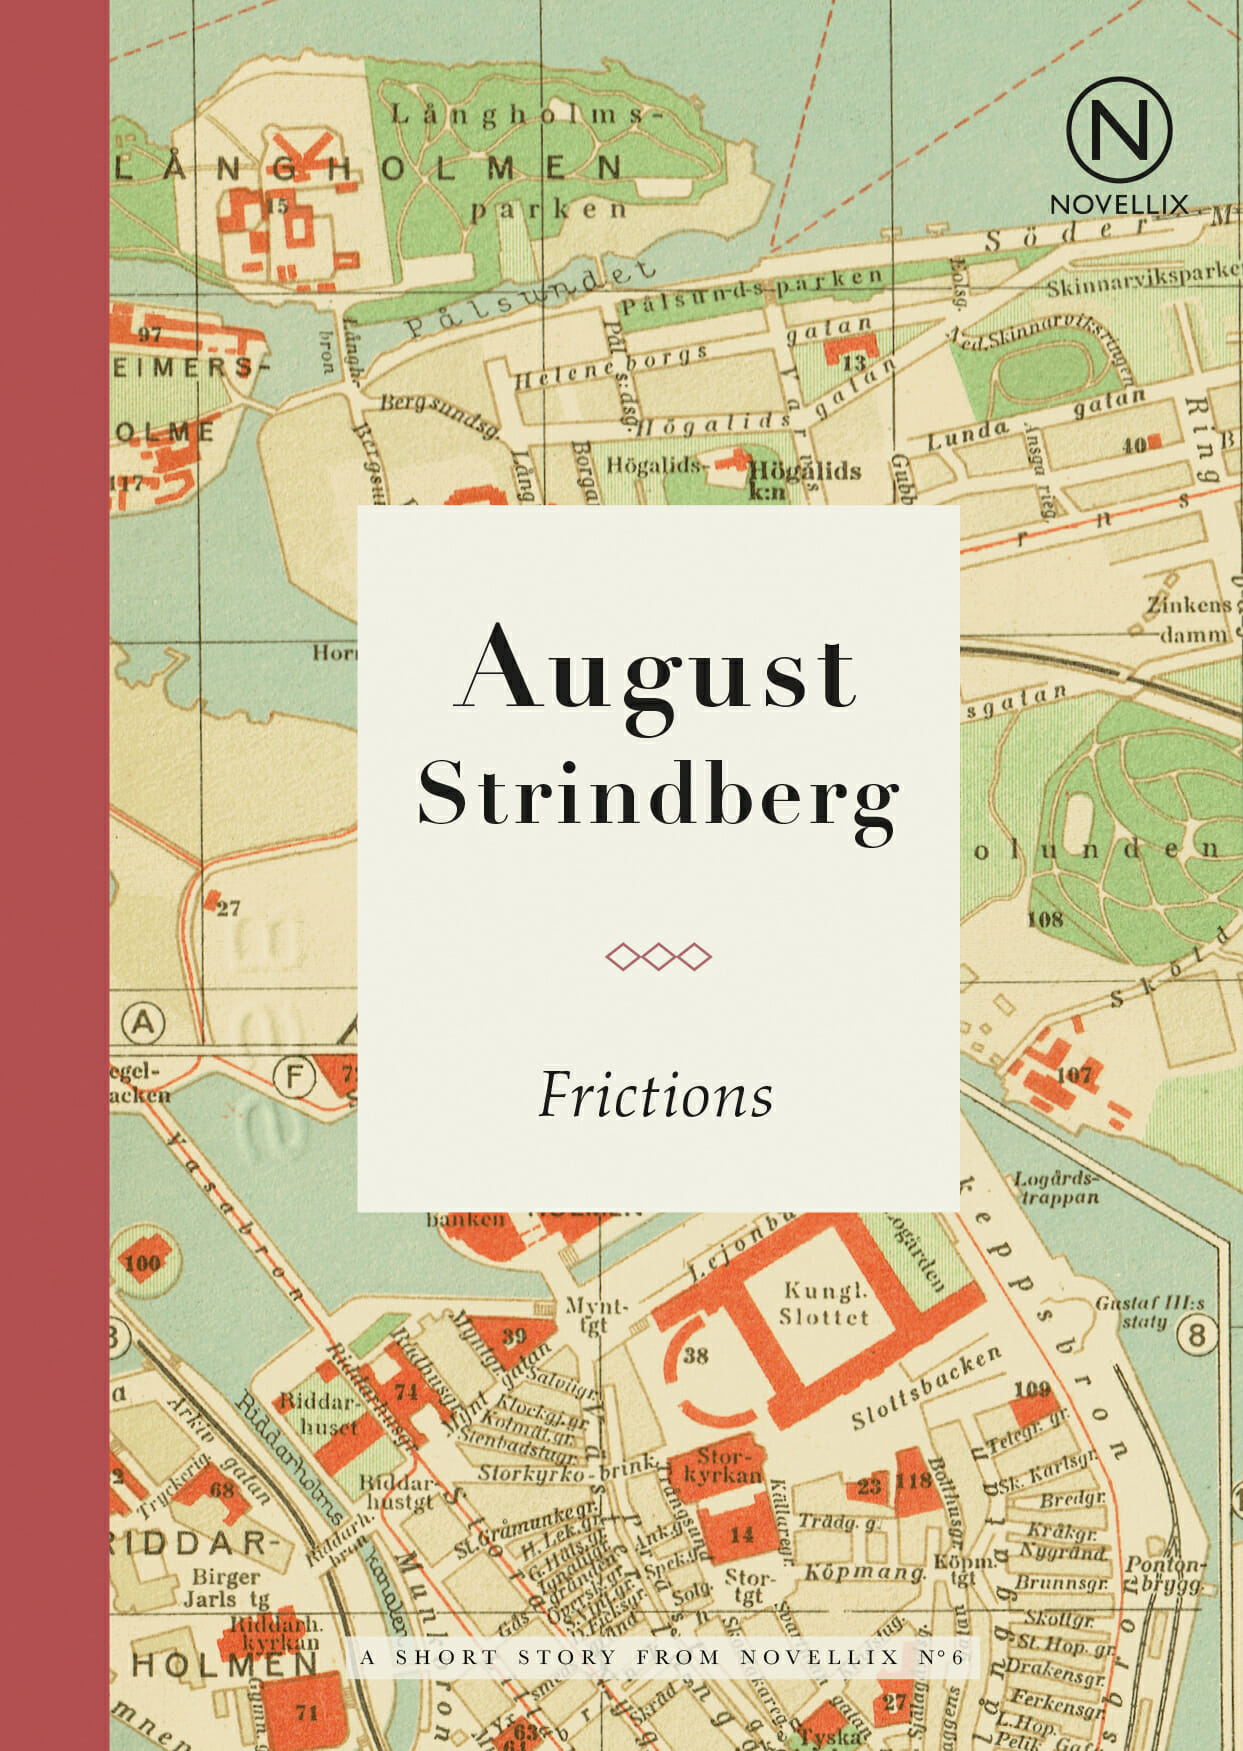 august strindberg frictions short story novell